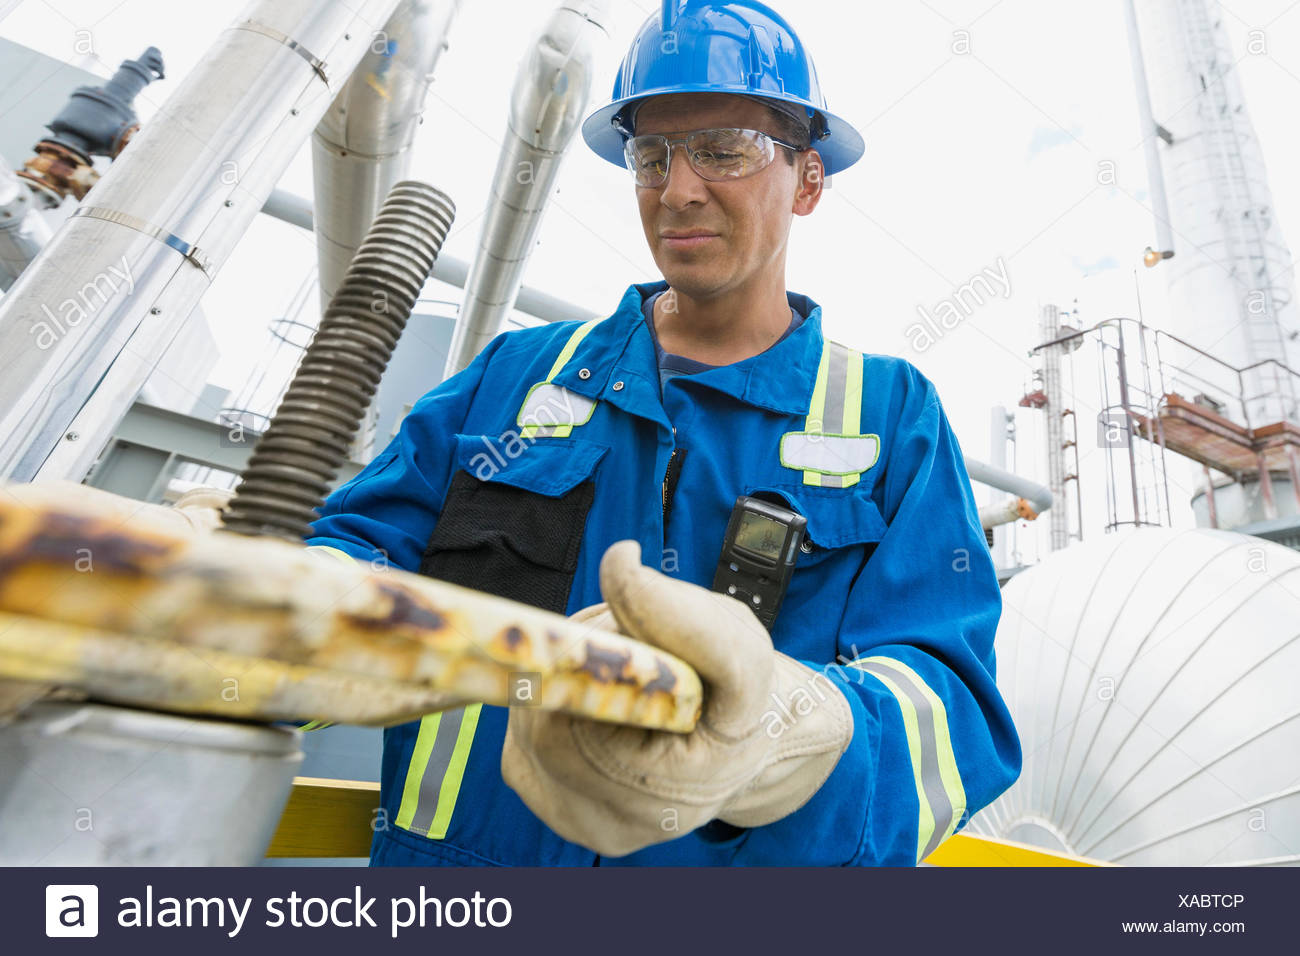 Male worker opening valve at gas plant - Stock Image